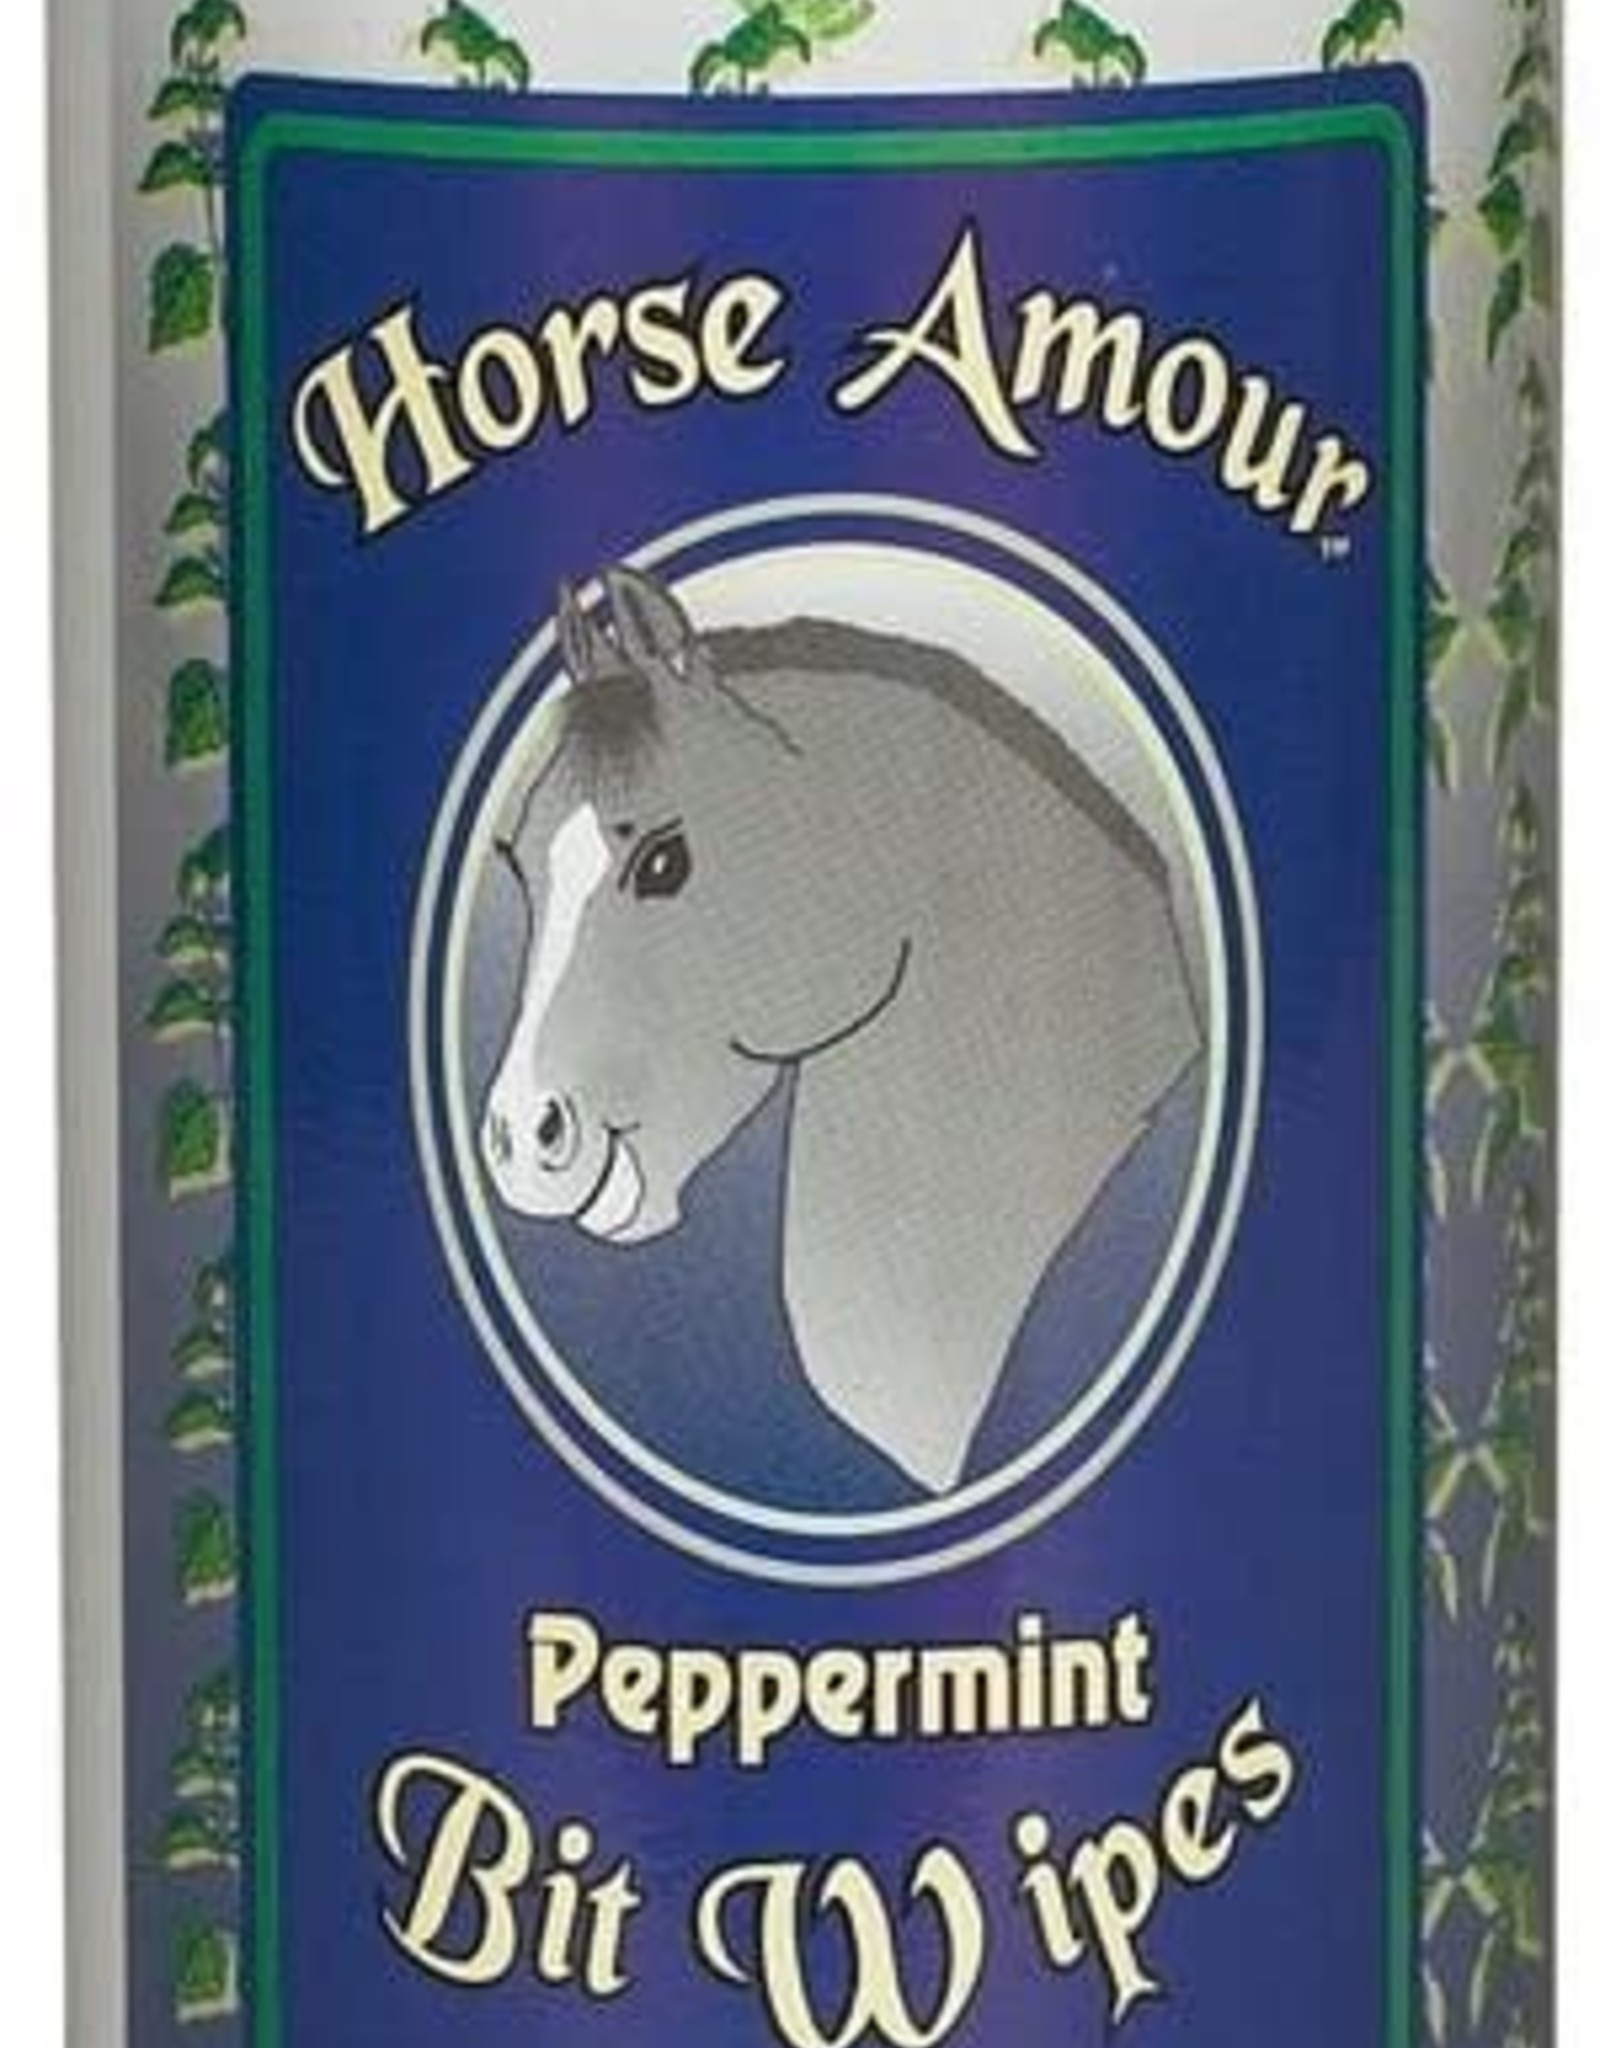 HORSE AMOUR BIT WIPES - PEPPERMINT